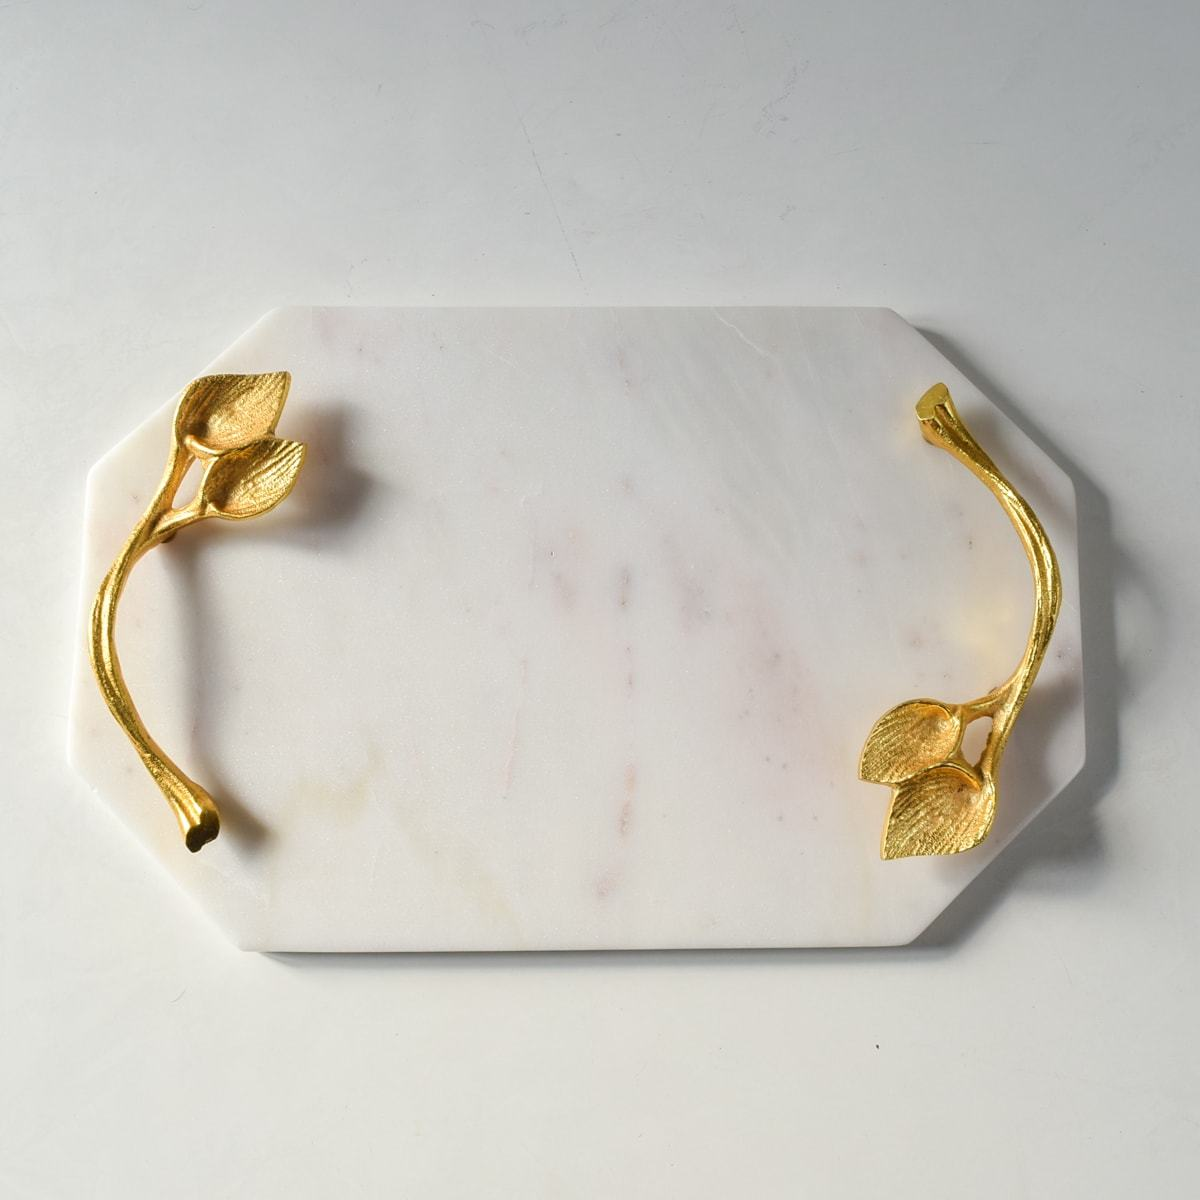 Grimora Marble Decorative Platter with Brass Handles